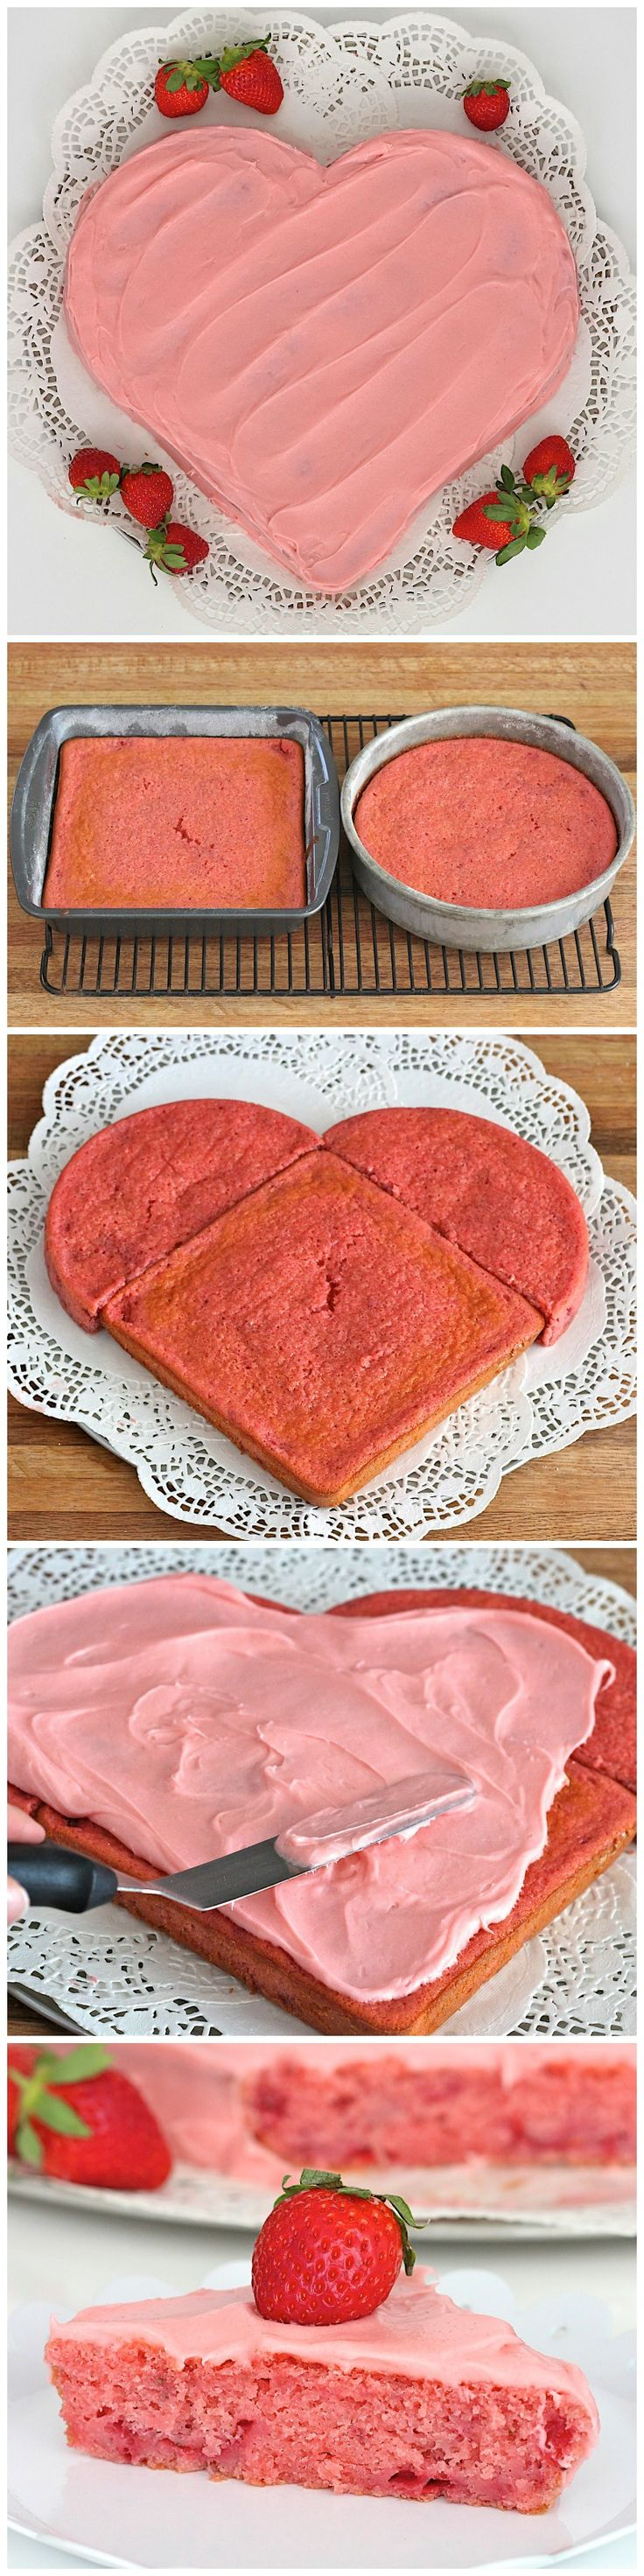 Fresh Strawberry Heart Cake ~ Deliciously fresh strawberry cake shaped like a heart and covered in a creamy dreamy strawberry frosting for a festive Valentine's Day dessert!